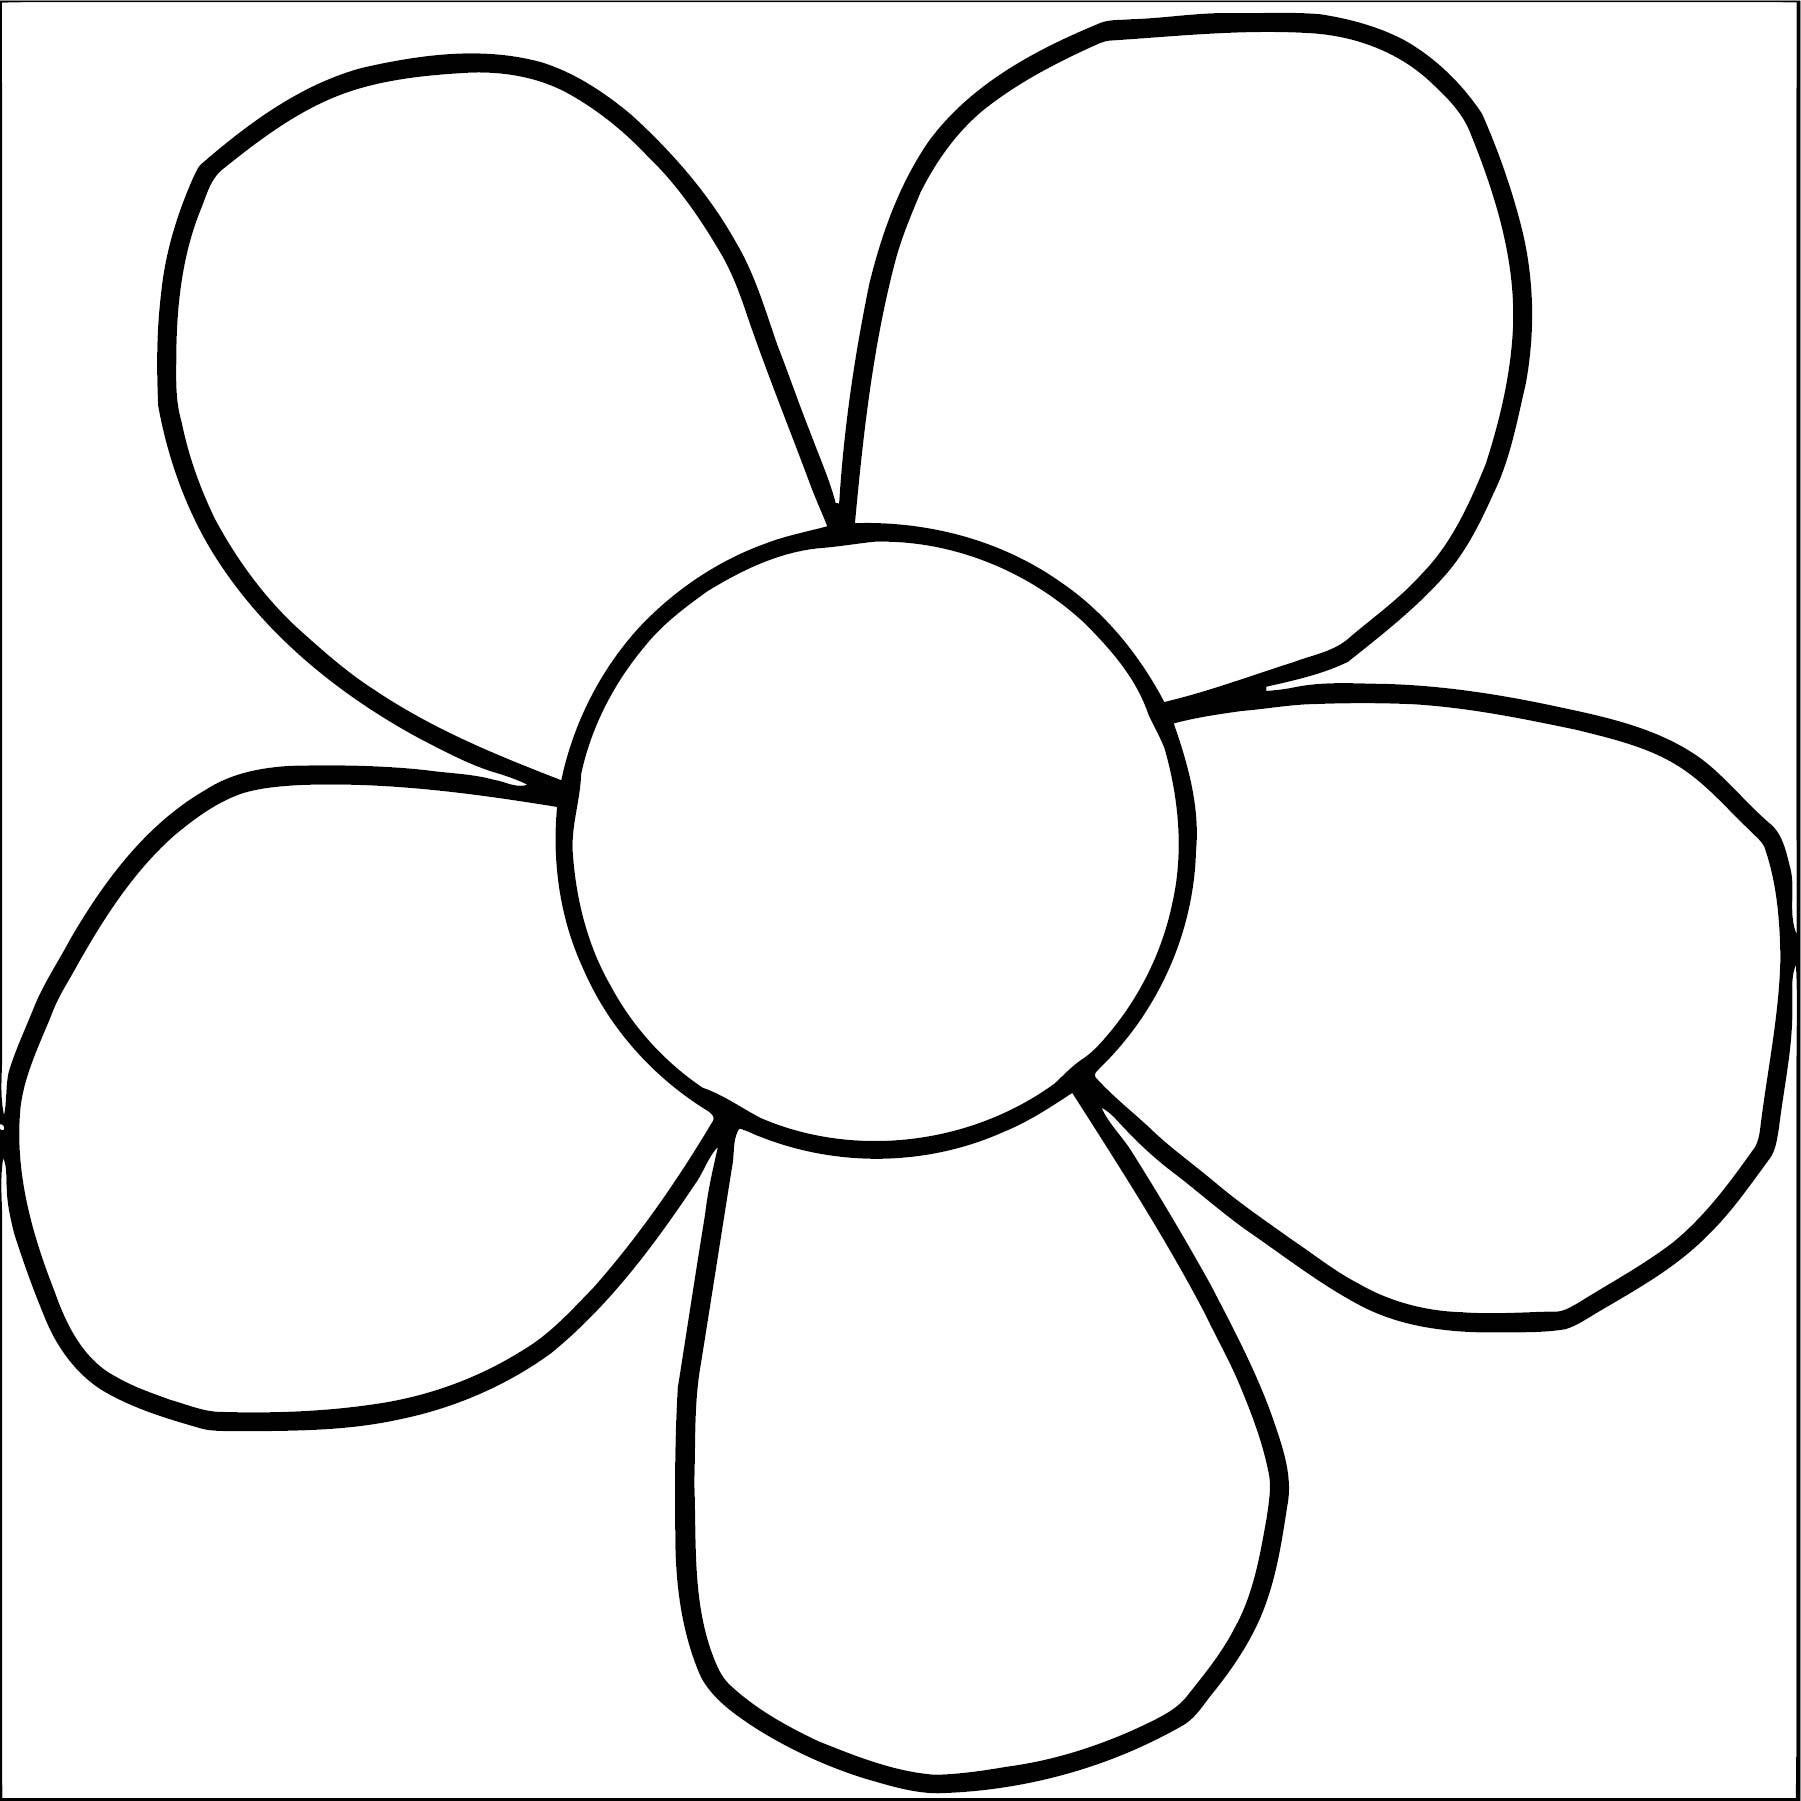 Flower Coloring Page Wecoloringpage 090